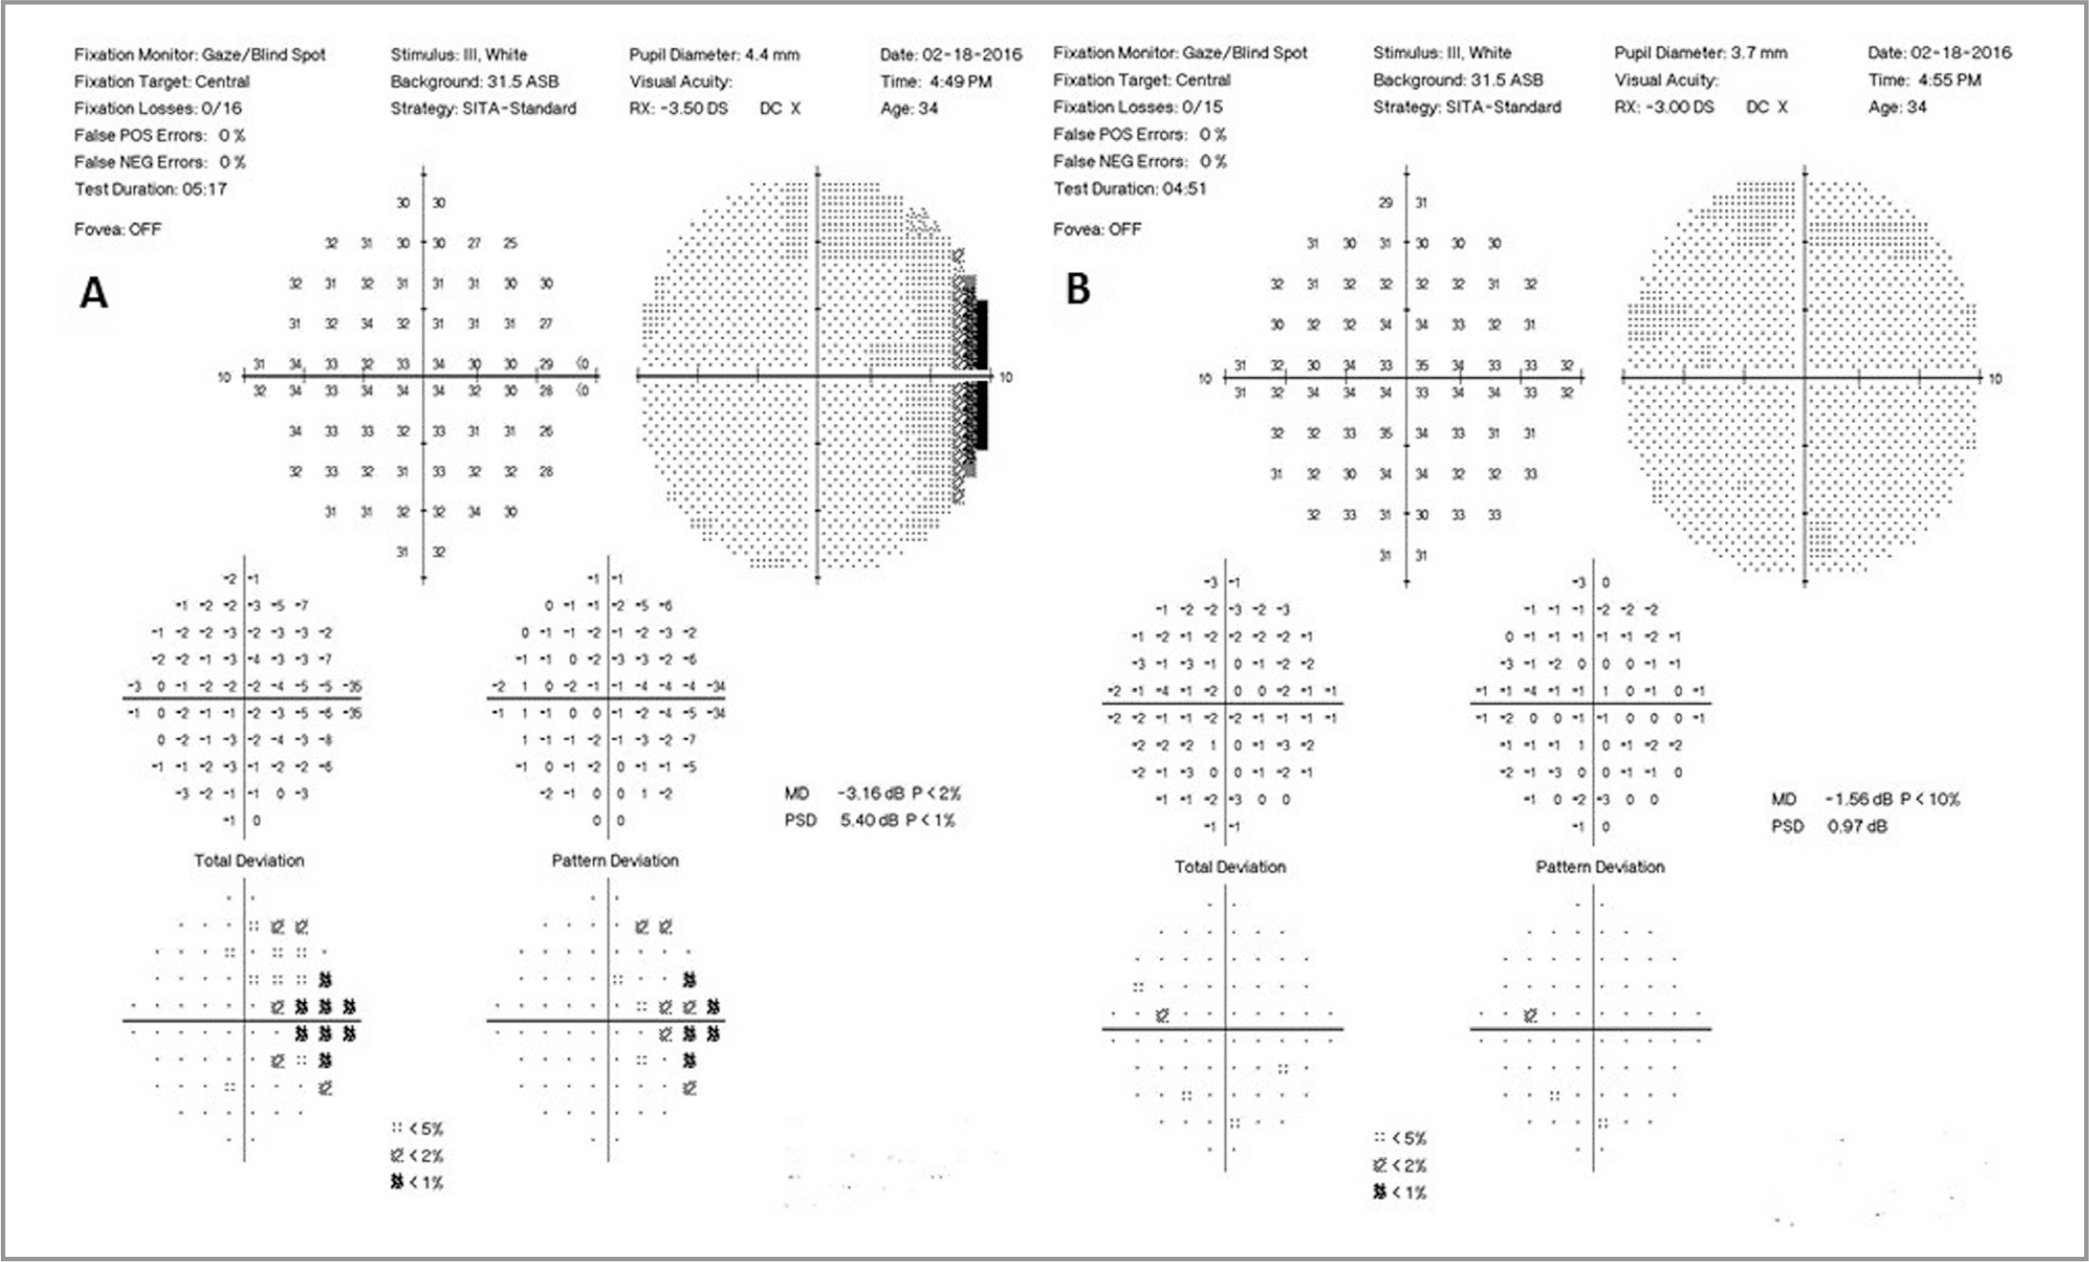 Seven months following the 2-year follow-up, the temporal visual field (VF) defect in the right eye persisted (A). The VF remained unchanged in the left eye (B).